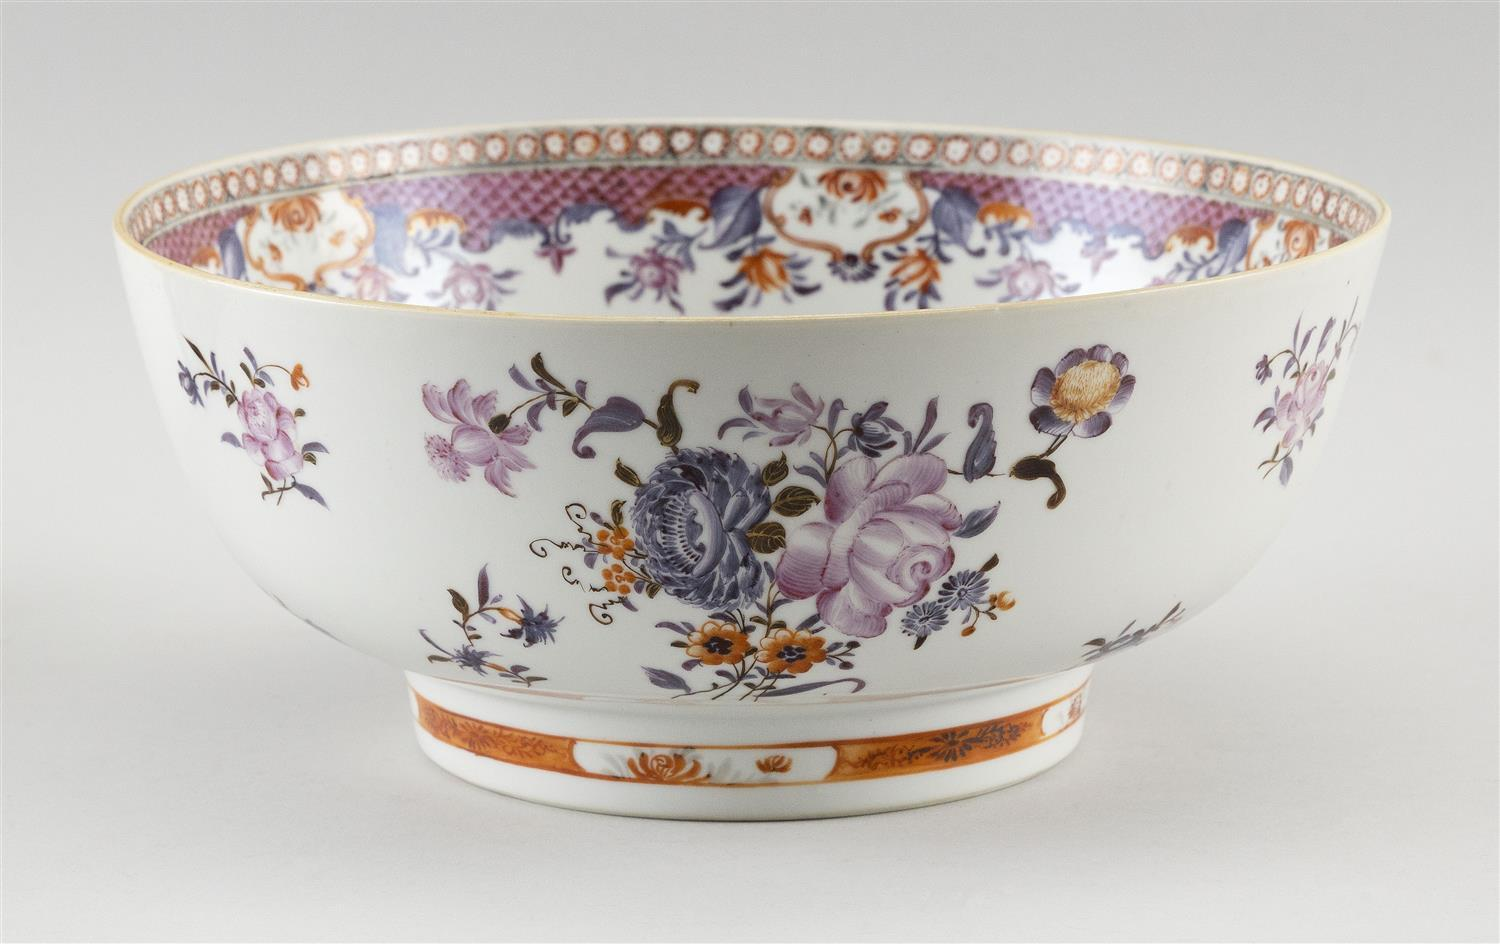 """SAMSON ARMORIAL-STYLE FAMILLE ROSE PORCELAIN BOWL Decorated with floral sprays. Height 4.5"""". Diameter 10""""."""